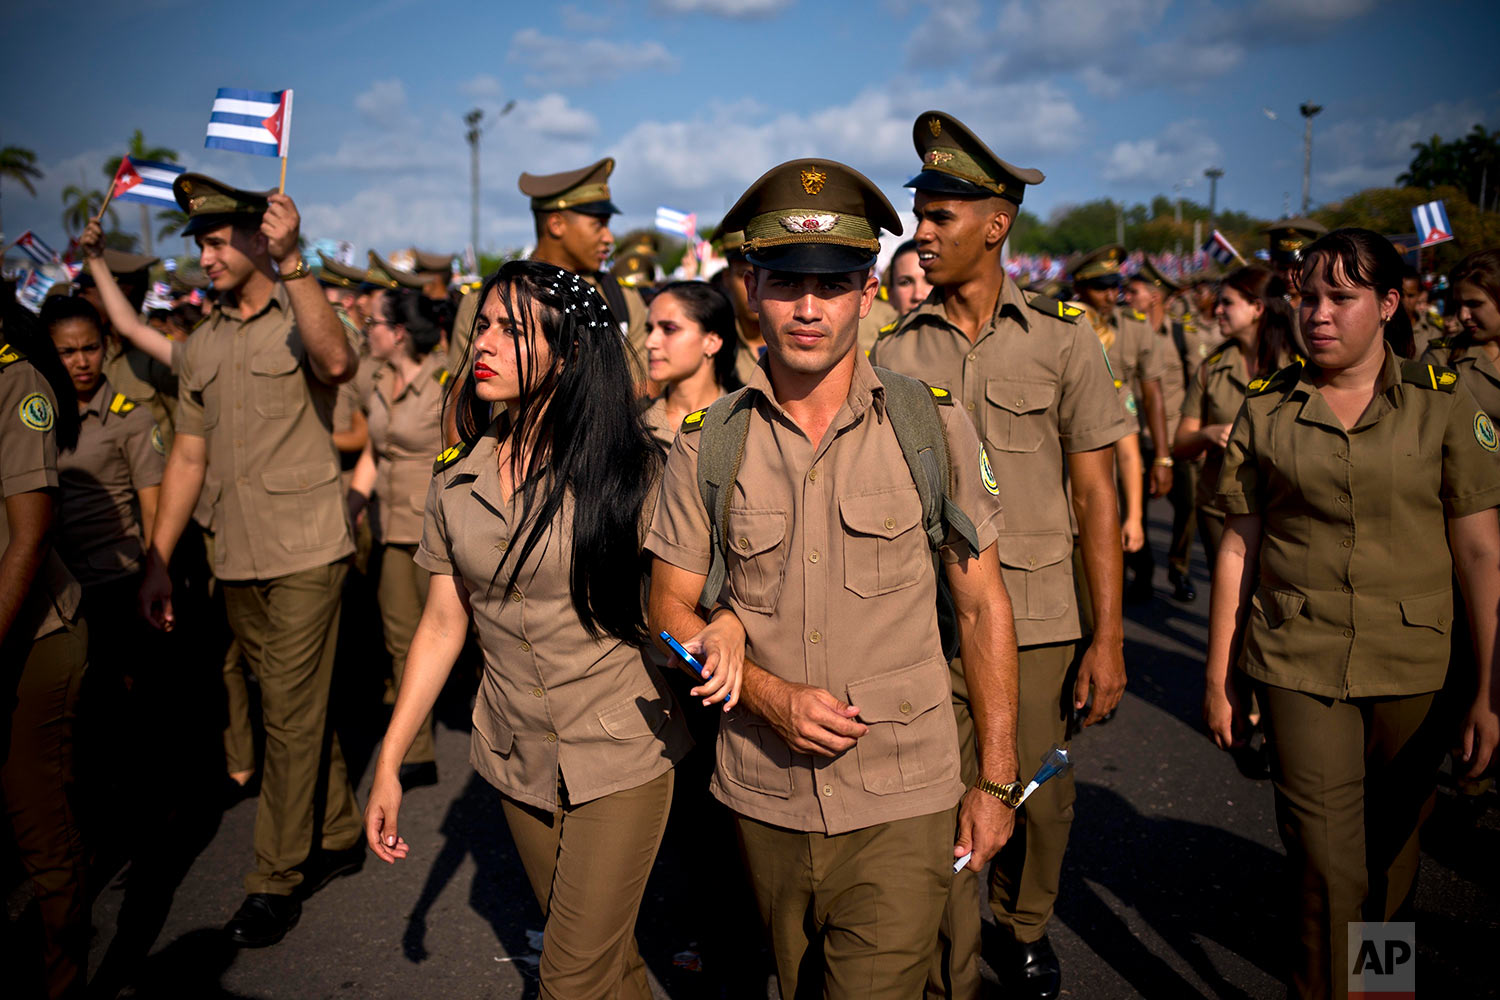 Cuban soldiers take part in the annual May Day parade at Revolution Square in Havana, Cuba, Tuesday, May 1, 2018.  (AP Photo/Ramon Espinosa)